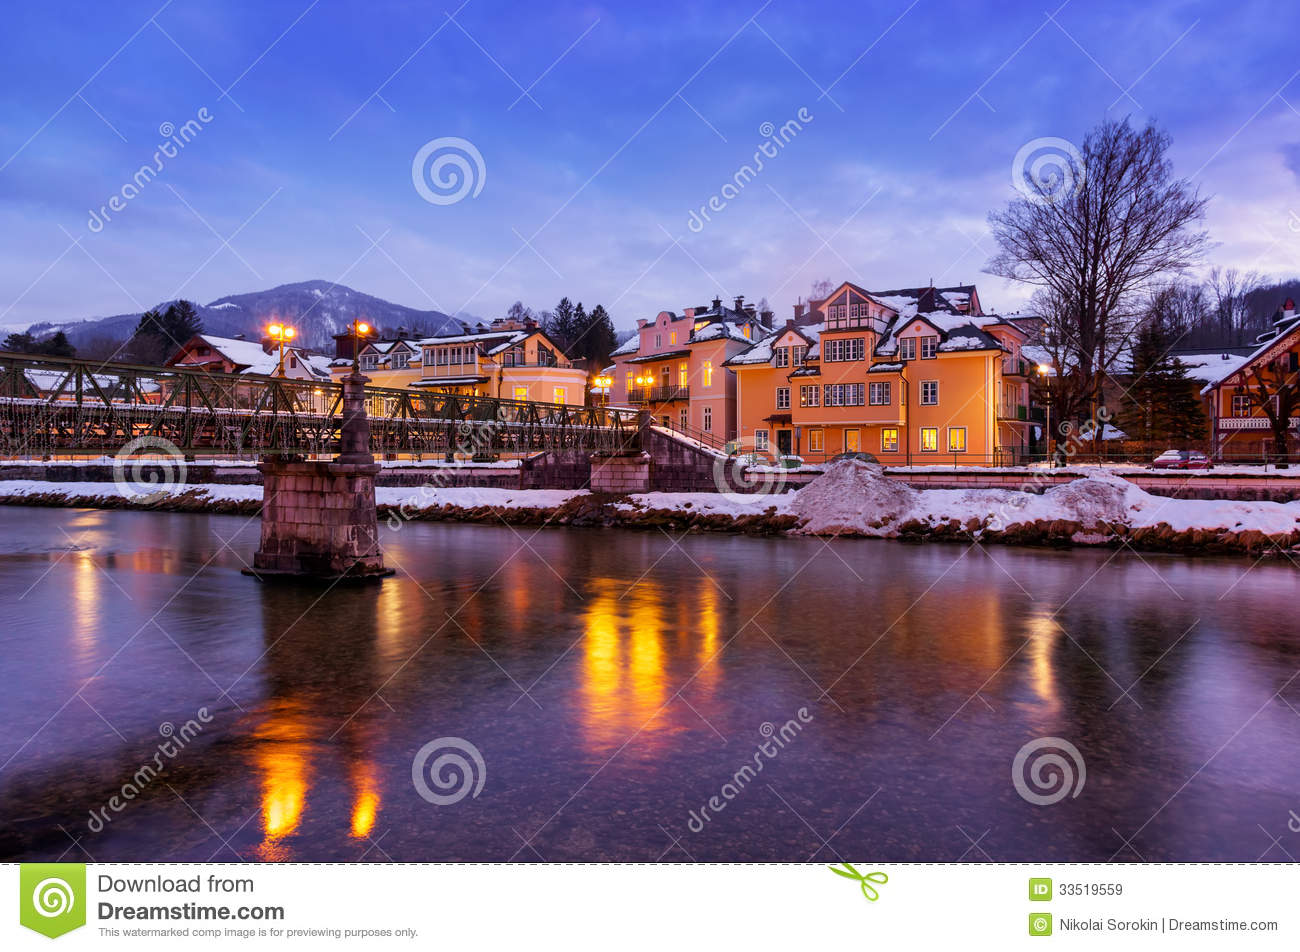 spa resort bad ischl austria at sunset stock image image 33519559. Black Bedroom Furniture Sets. Home Design Ideas